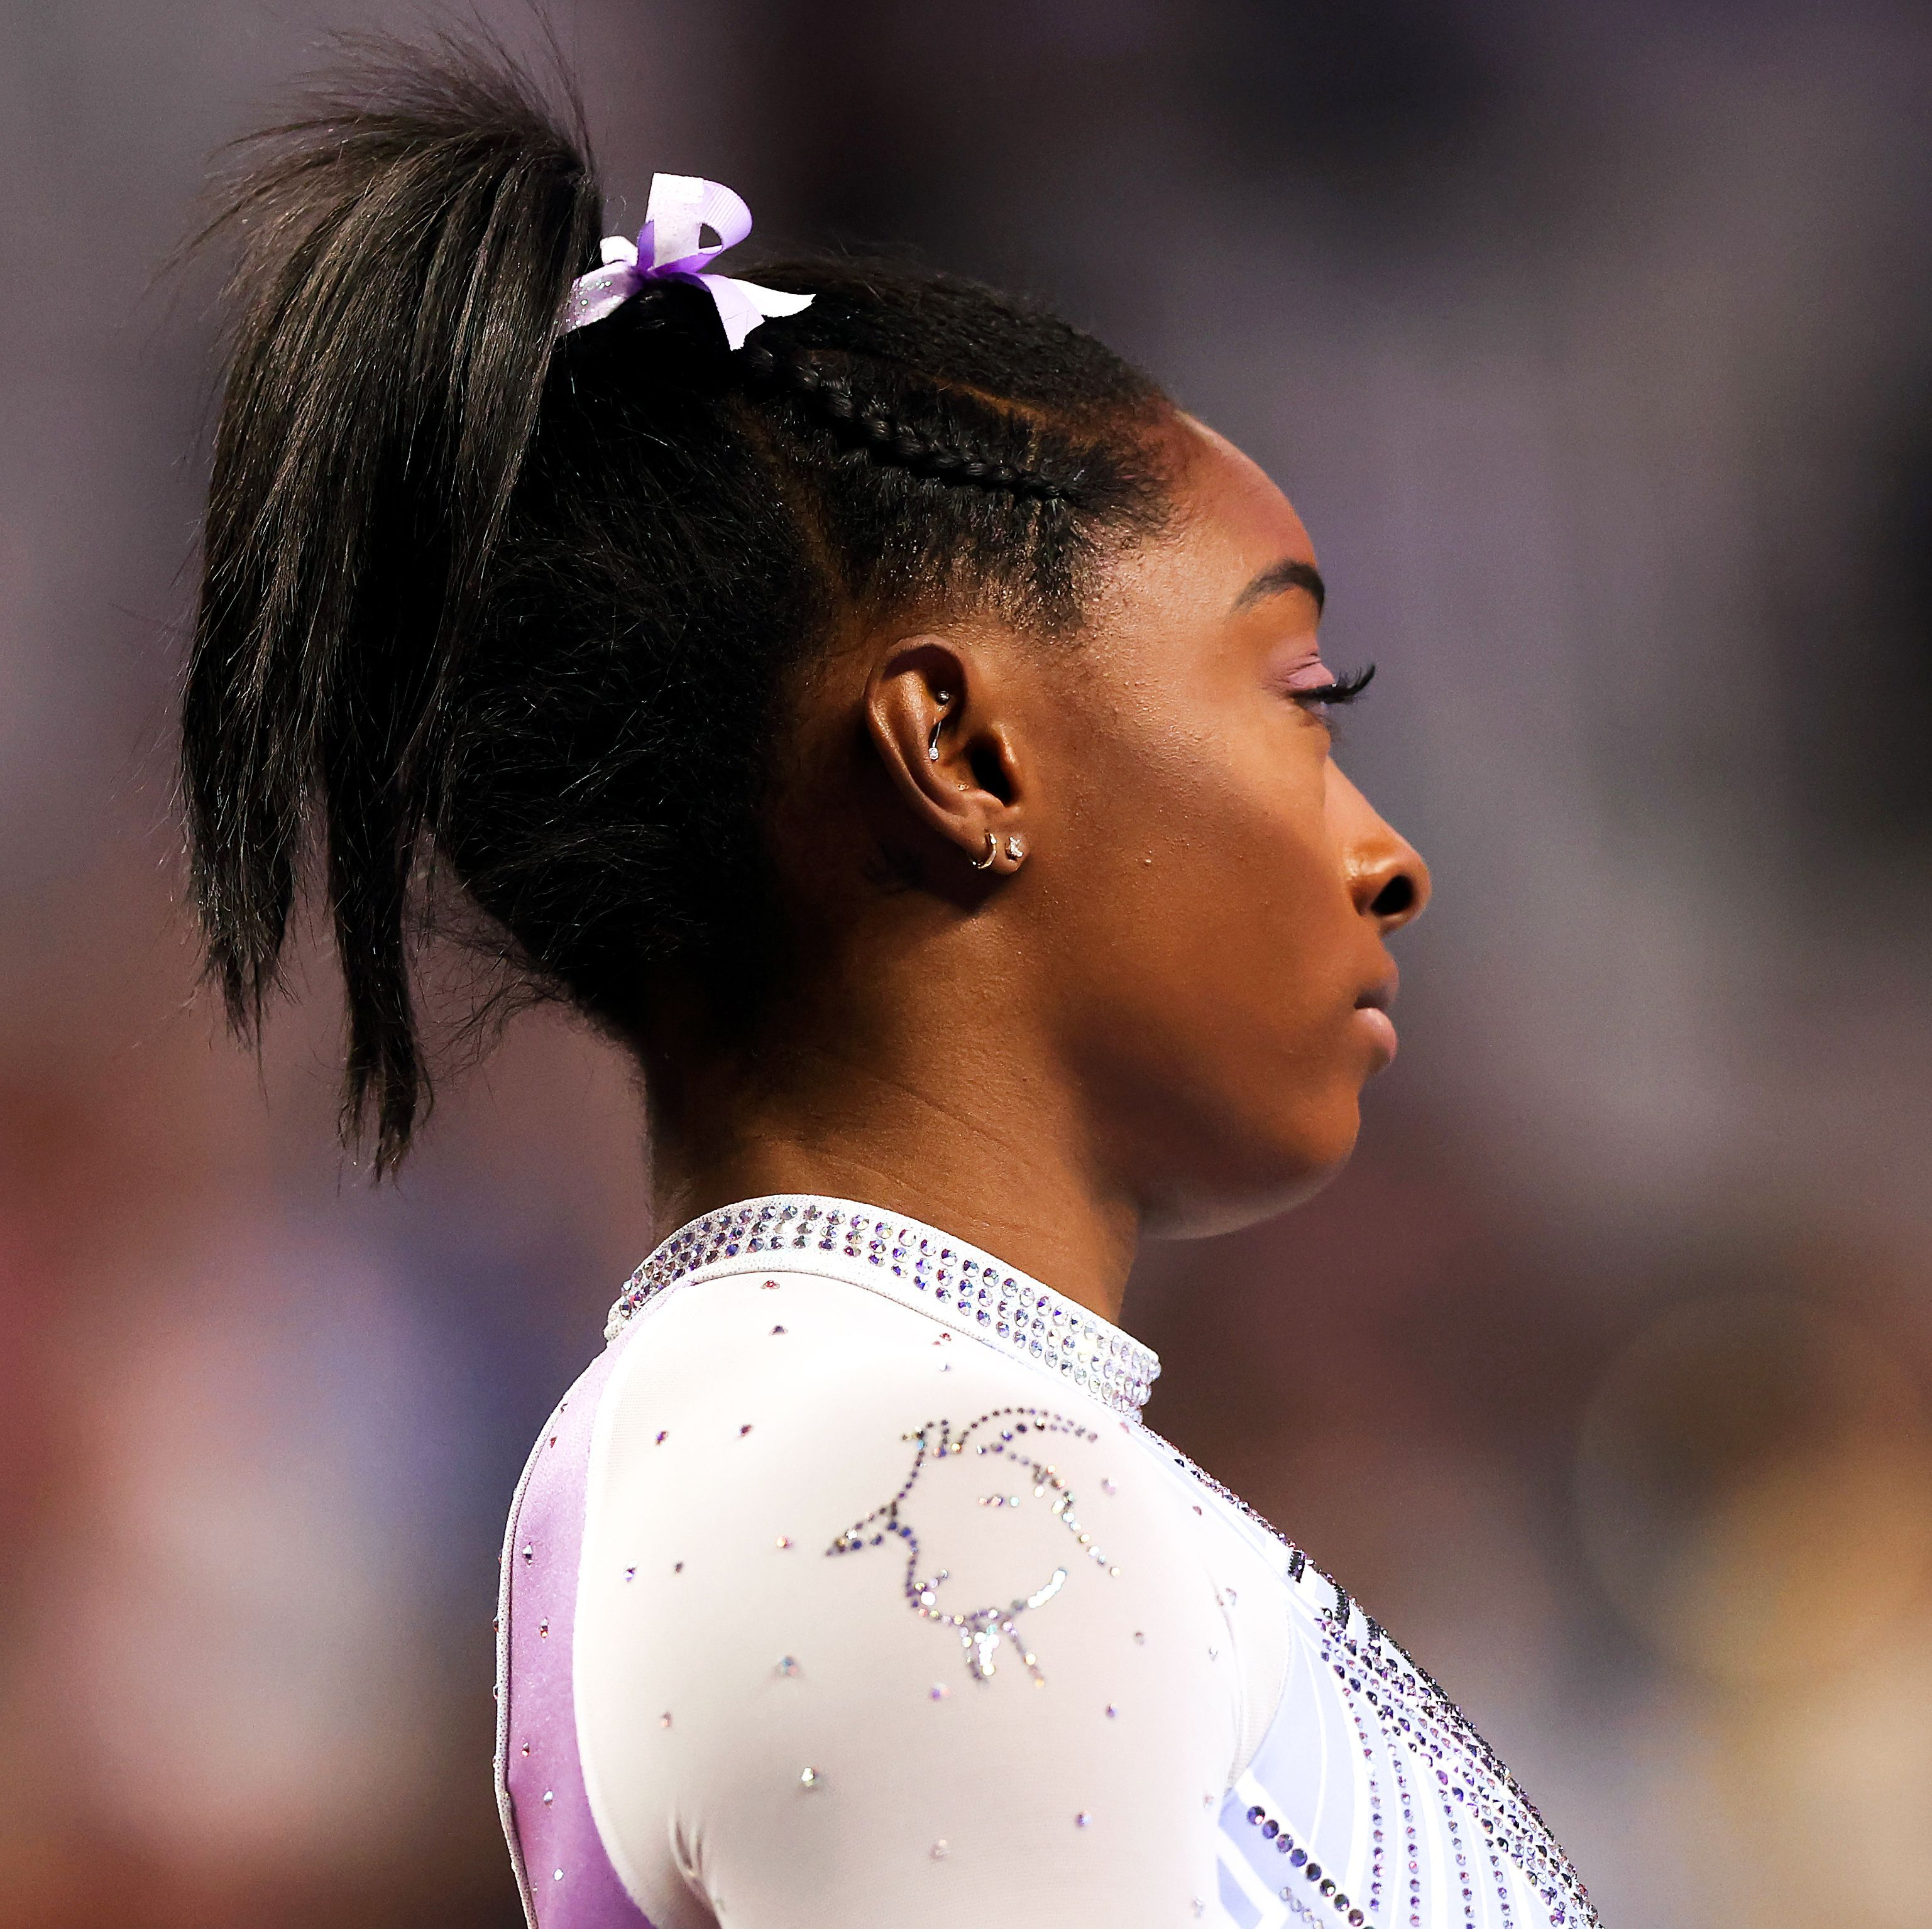 Photograph of Simone Biles, the most decorated US women's gymnast ever.